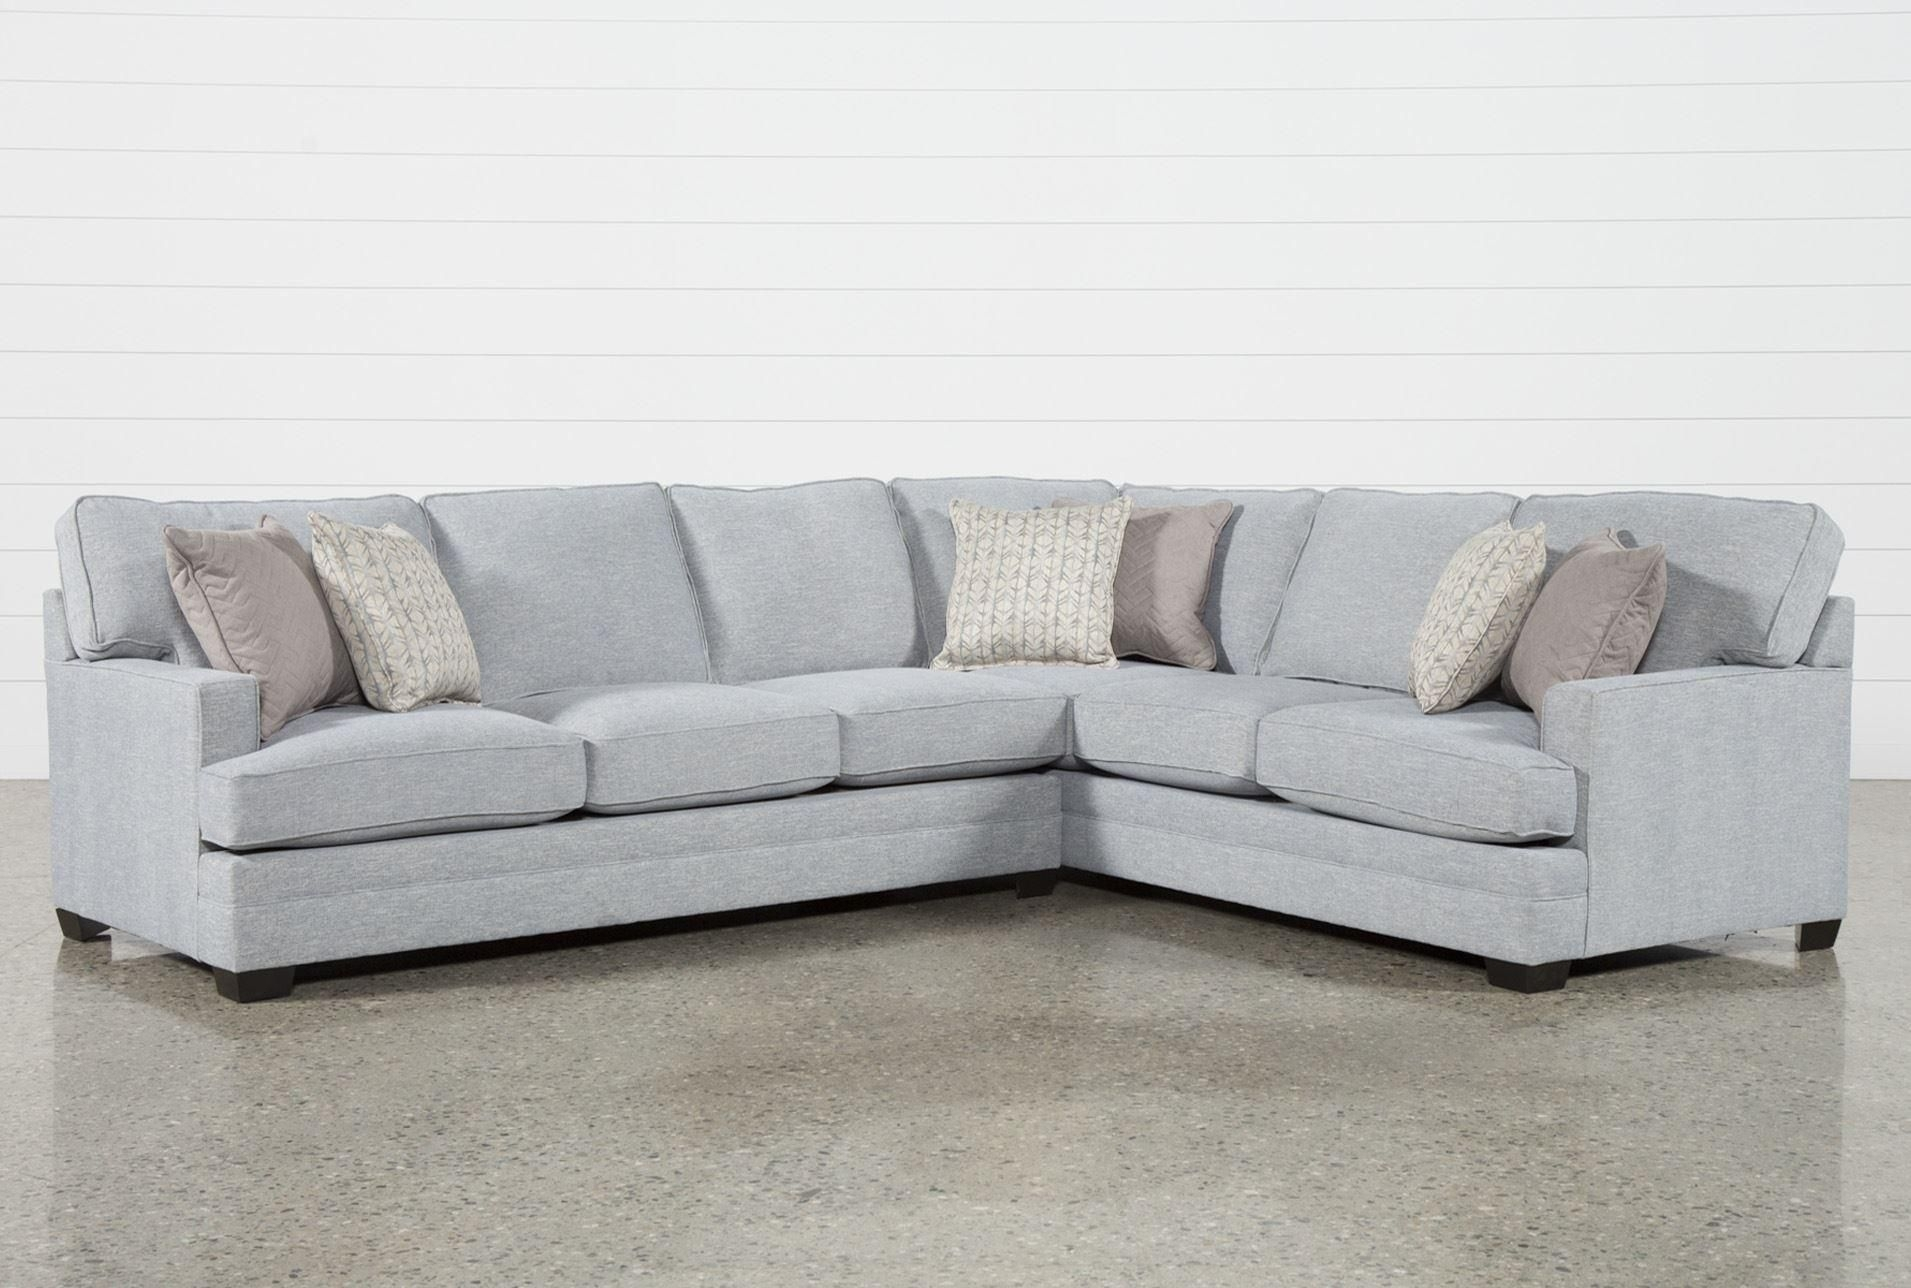 Josephine 2 Piece Sectional W/laf Sofa | For The Home | Pinterest intended for Aquarius Dark Grey 2 Piece Sectionals With Laf Chaise (Image 16 of 30)